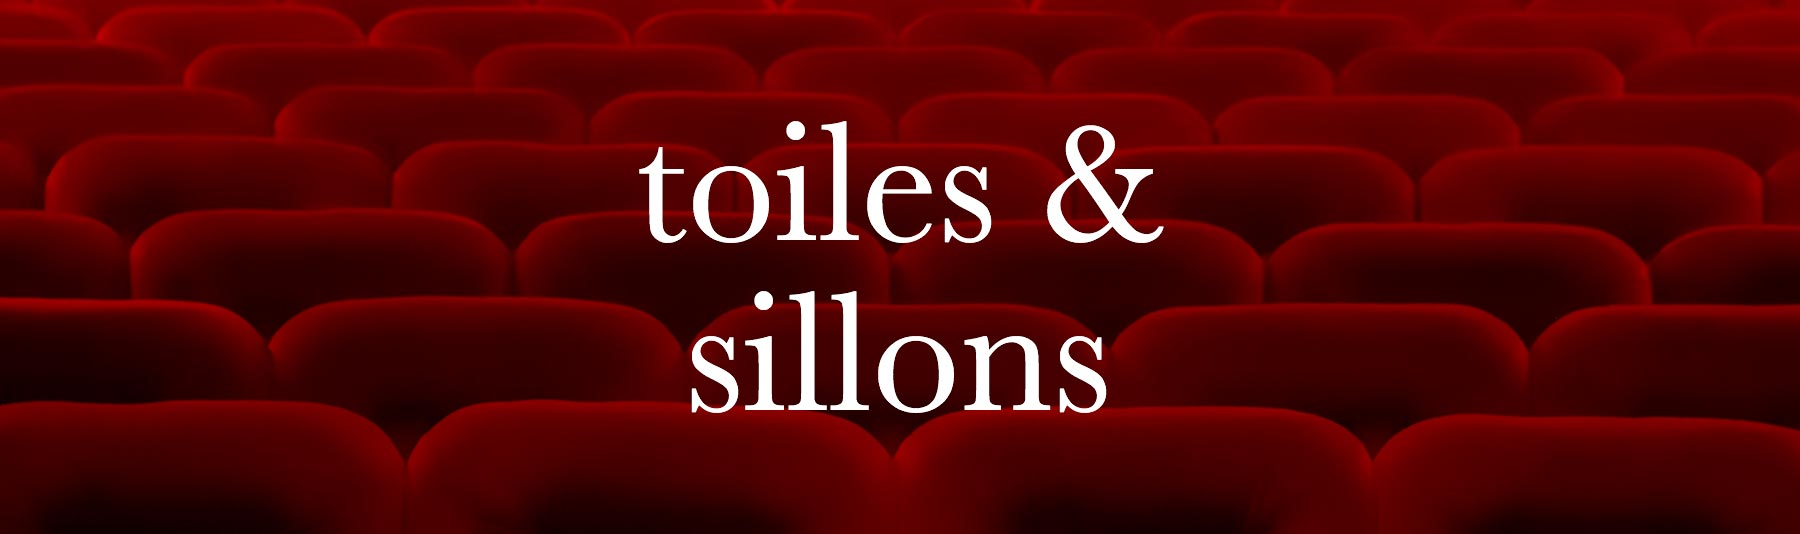 Toiles & Sillon